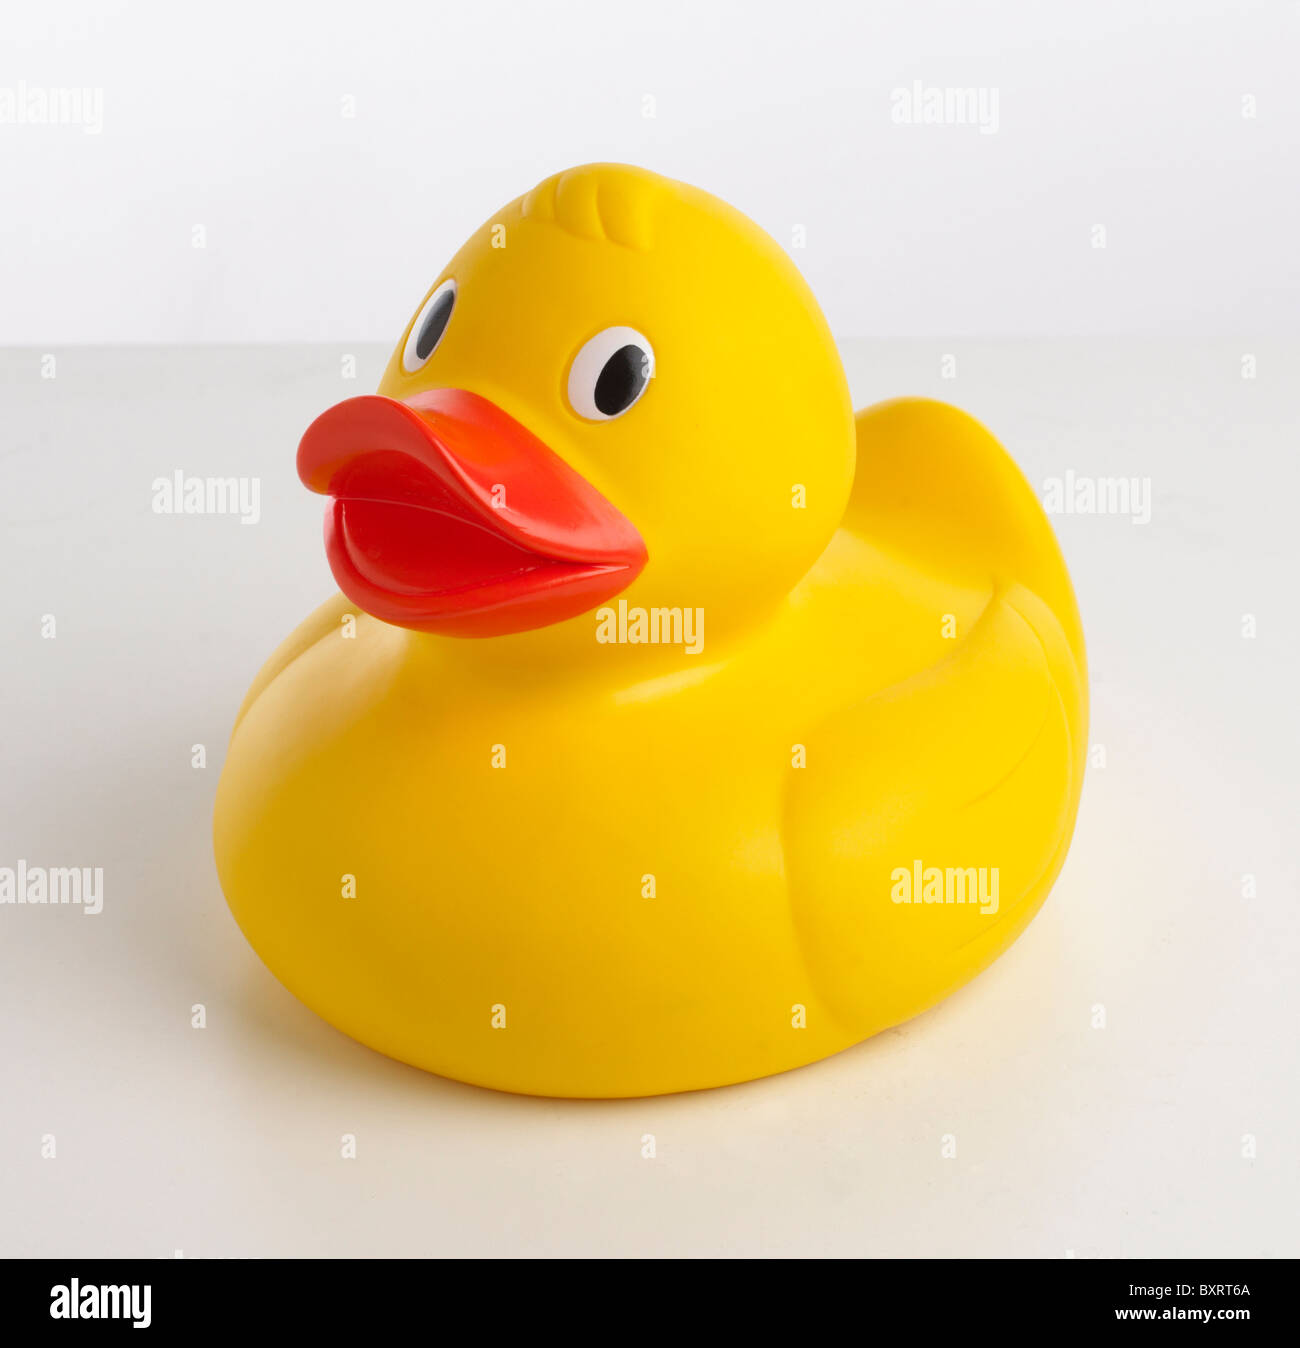 Rubber Duck Stock Photos & Rubber Duck Stock Images - Alamy